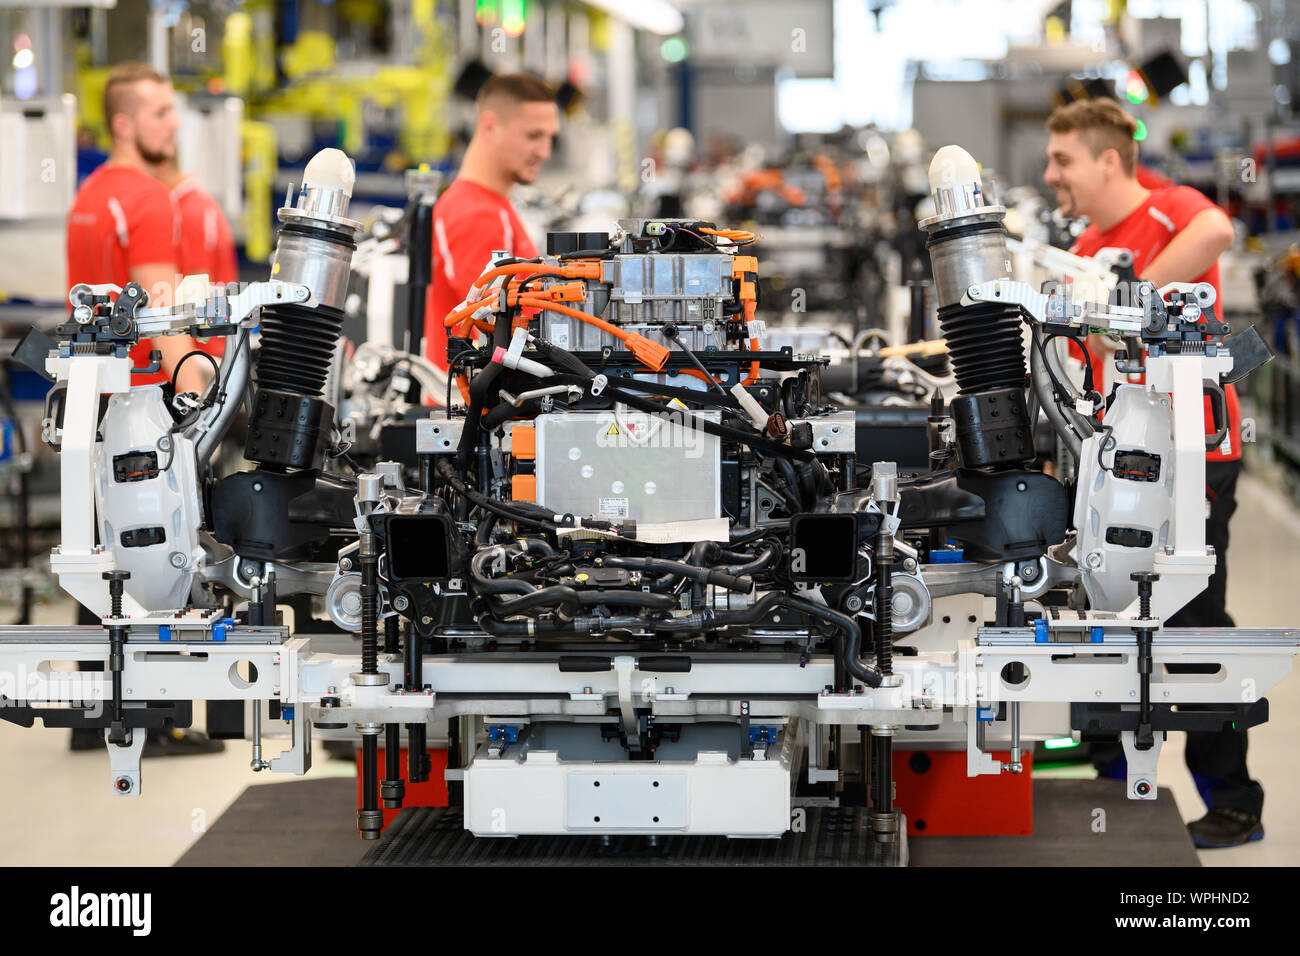 09 September 2019 Baden Wuerttemberg Stuttgart During A Show Production Opening The Production Of The Porsche Taycan The Sports Car Manufacturer S First All Electric Model Employees Are Working On A Chassis With An Electric